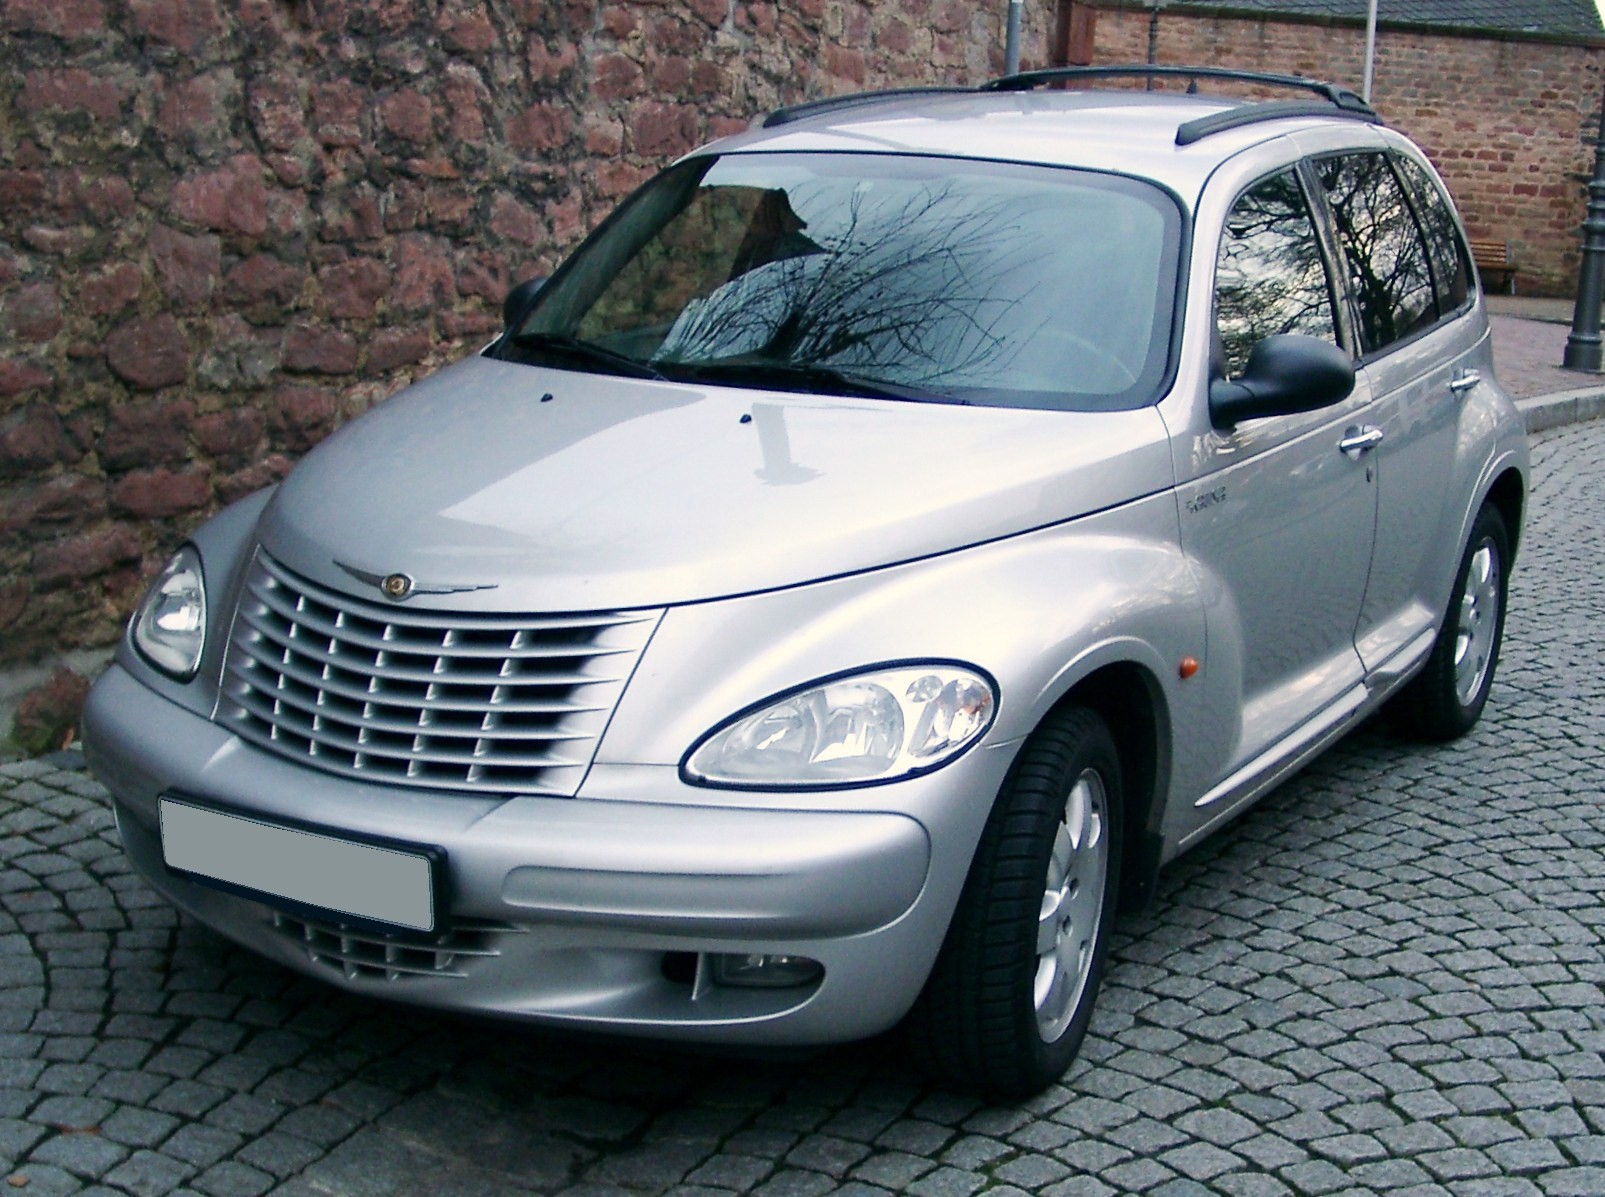 2007 Chrysler Pt Cruiser #8